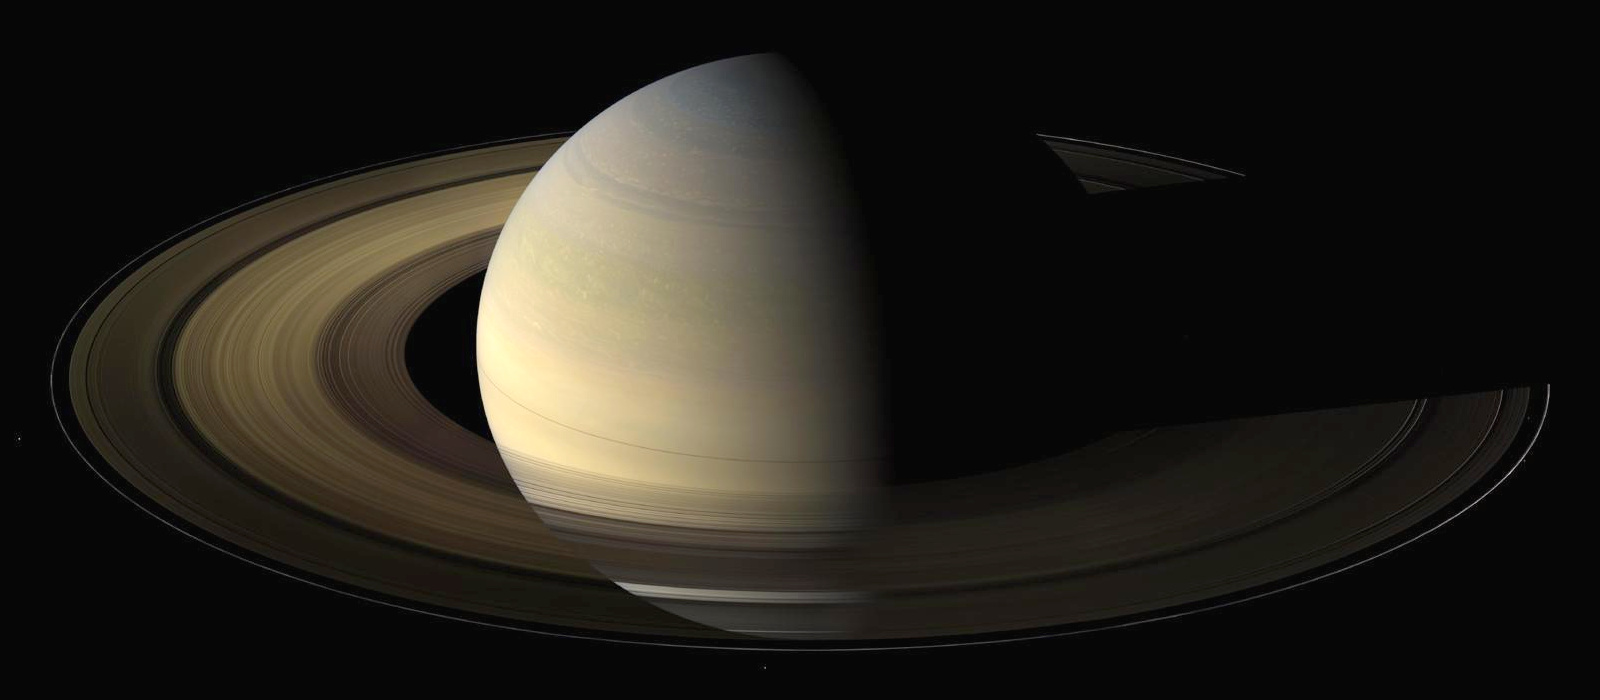 planet saturn rings - photo #7